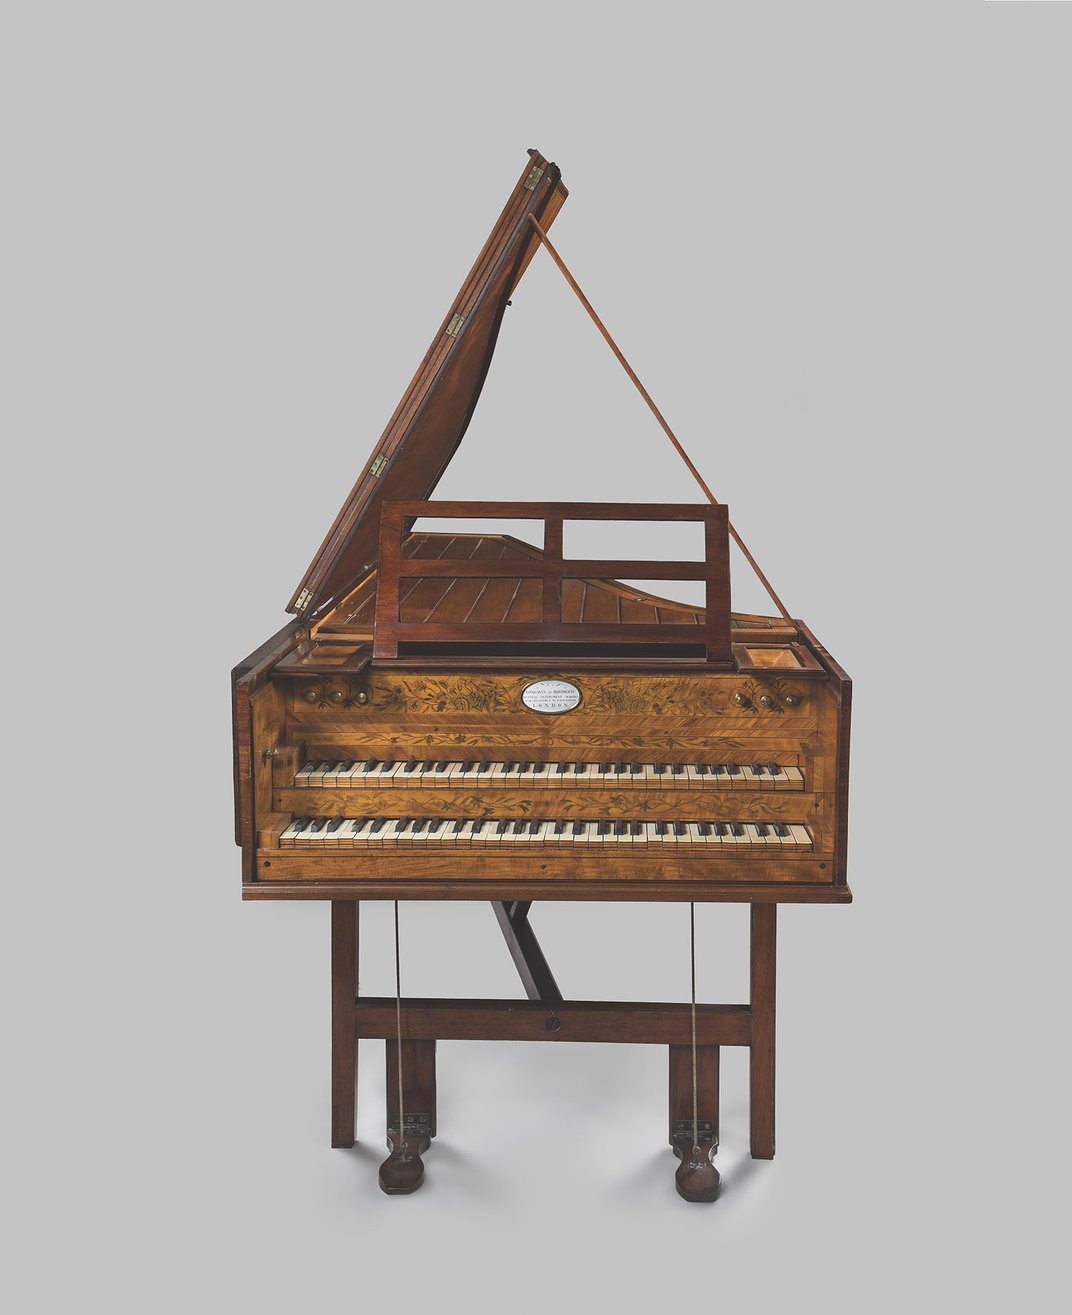 5-octave, two-manual harpsichord, purchased by President Washington for the use of Nelly Parke Custis in the President's House in Philadelphia, collection of Mount Vernon.